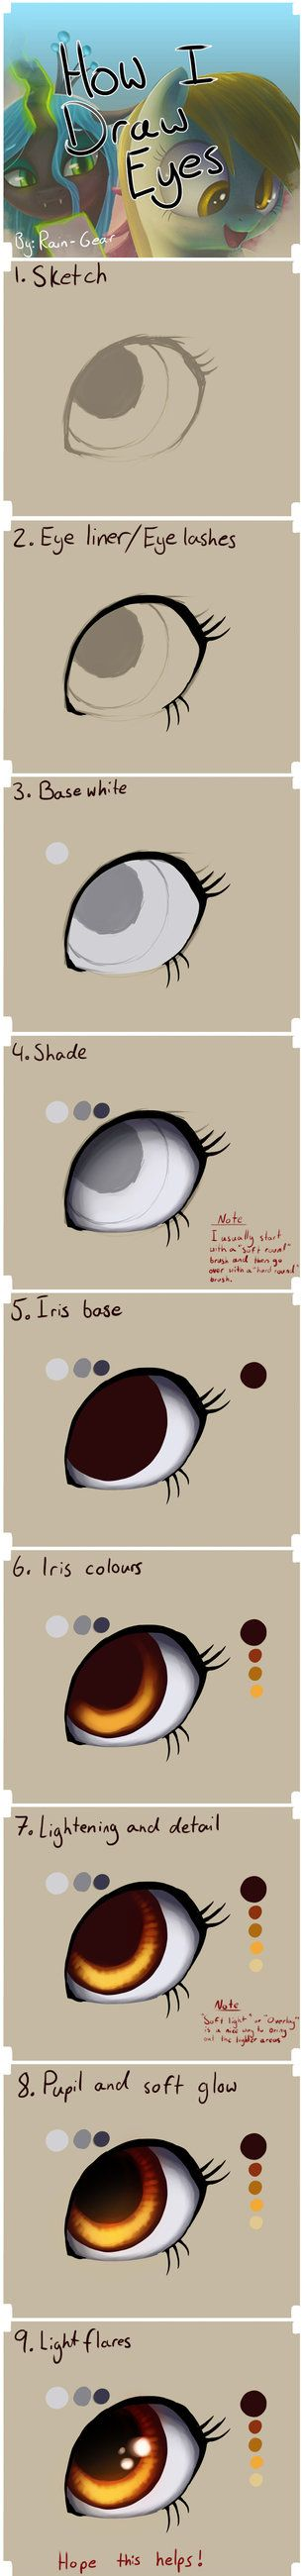 So I finally got around to making a step by step of how I draw eyes.  I have many other topics I want to cover but what would you guys like to see form me? Leave your suggestions below if you ...